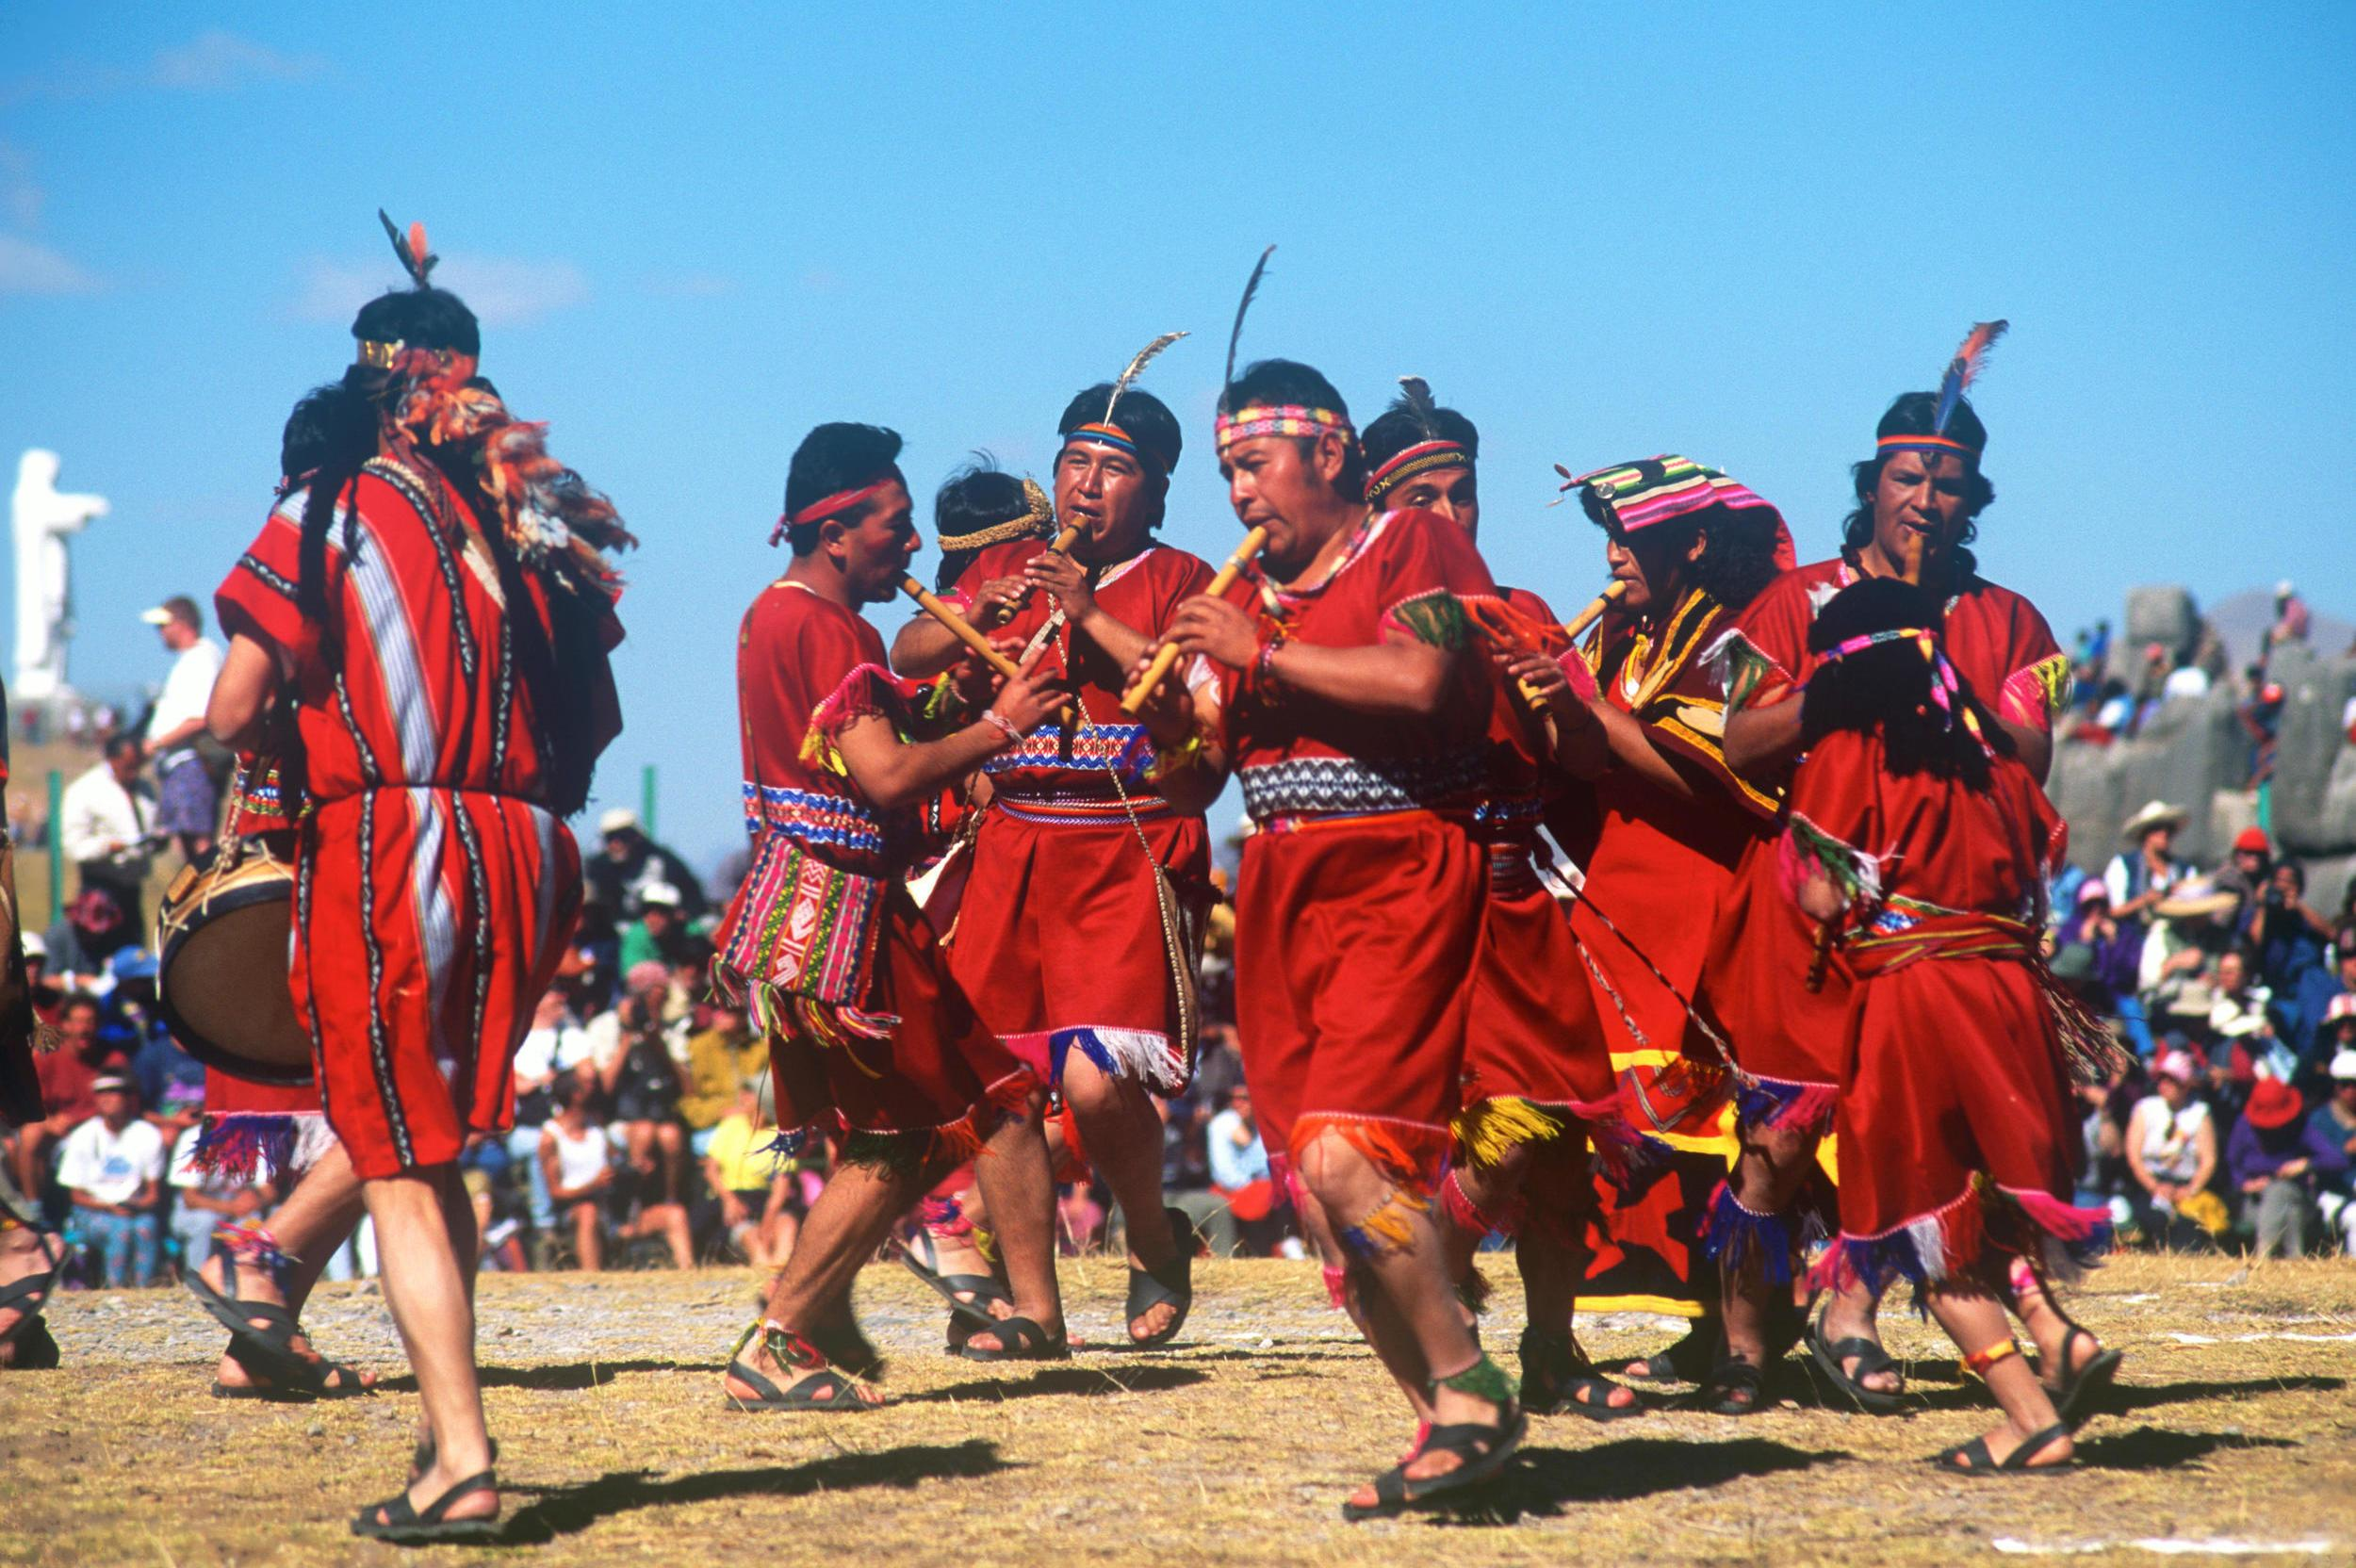 """Peru's Inca capital Cusco hosts the historic festival of Inti Raymi or '<a href=""""http://www.lonelyplanet.com/peru/cuzco/travel-tips-and-articles/77190"""" target=""""_blank"""">Festival of the Sun</a>' on June 24 each year at the fortress Sacsayhuamán. Historically the locals would gather on the winter solstice to honour the sun god Inti and the ceremony still takes place with a simulated lama sacrifice as a tribute to the Inca. In the modern day it's one of the largest festivals in South America and hundreds of thousands of people travel from all over the world to join in the week-long celebrations. <strong>Try this:</strong> Opt for a homestay to experience life like a local. <a href=""""http://www.homestay.com/peru/cusco/71526-homestay-in-santiago-frente-al-nuevo-hospital-anotnio-lorena-cusco"""" target=""""_blank"""">Homestay.com</a> host Felice's house is bright, colourful and her husband is a tour guide. Stays start from £19 per night."""